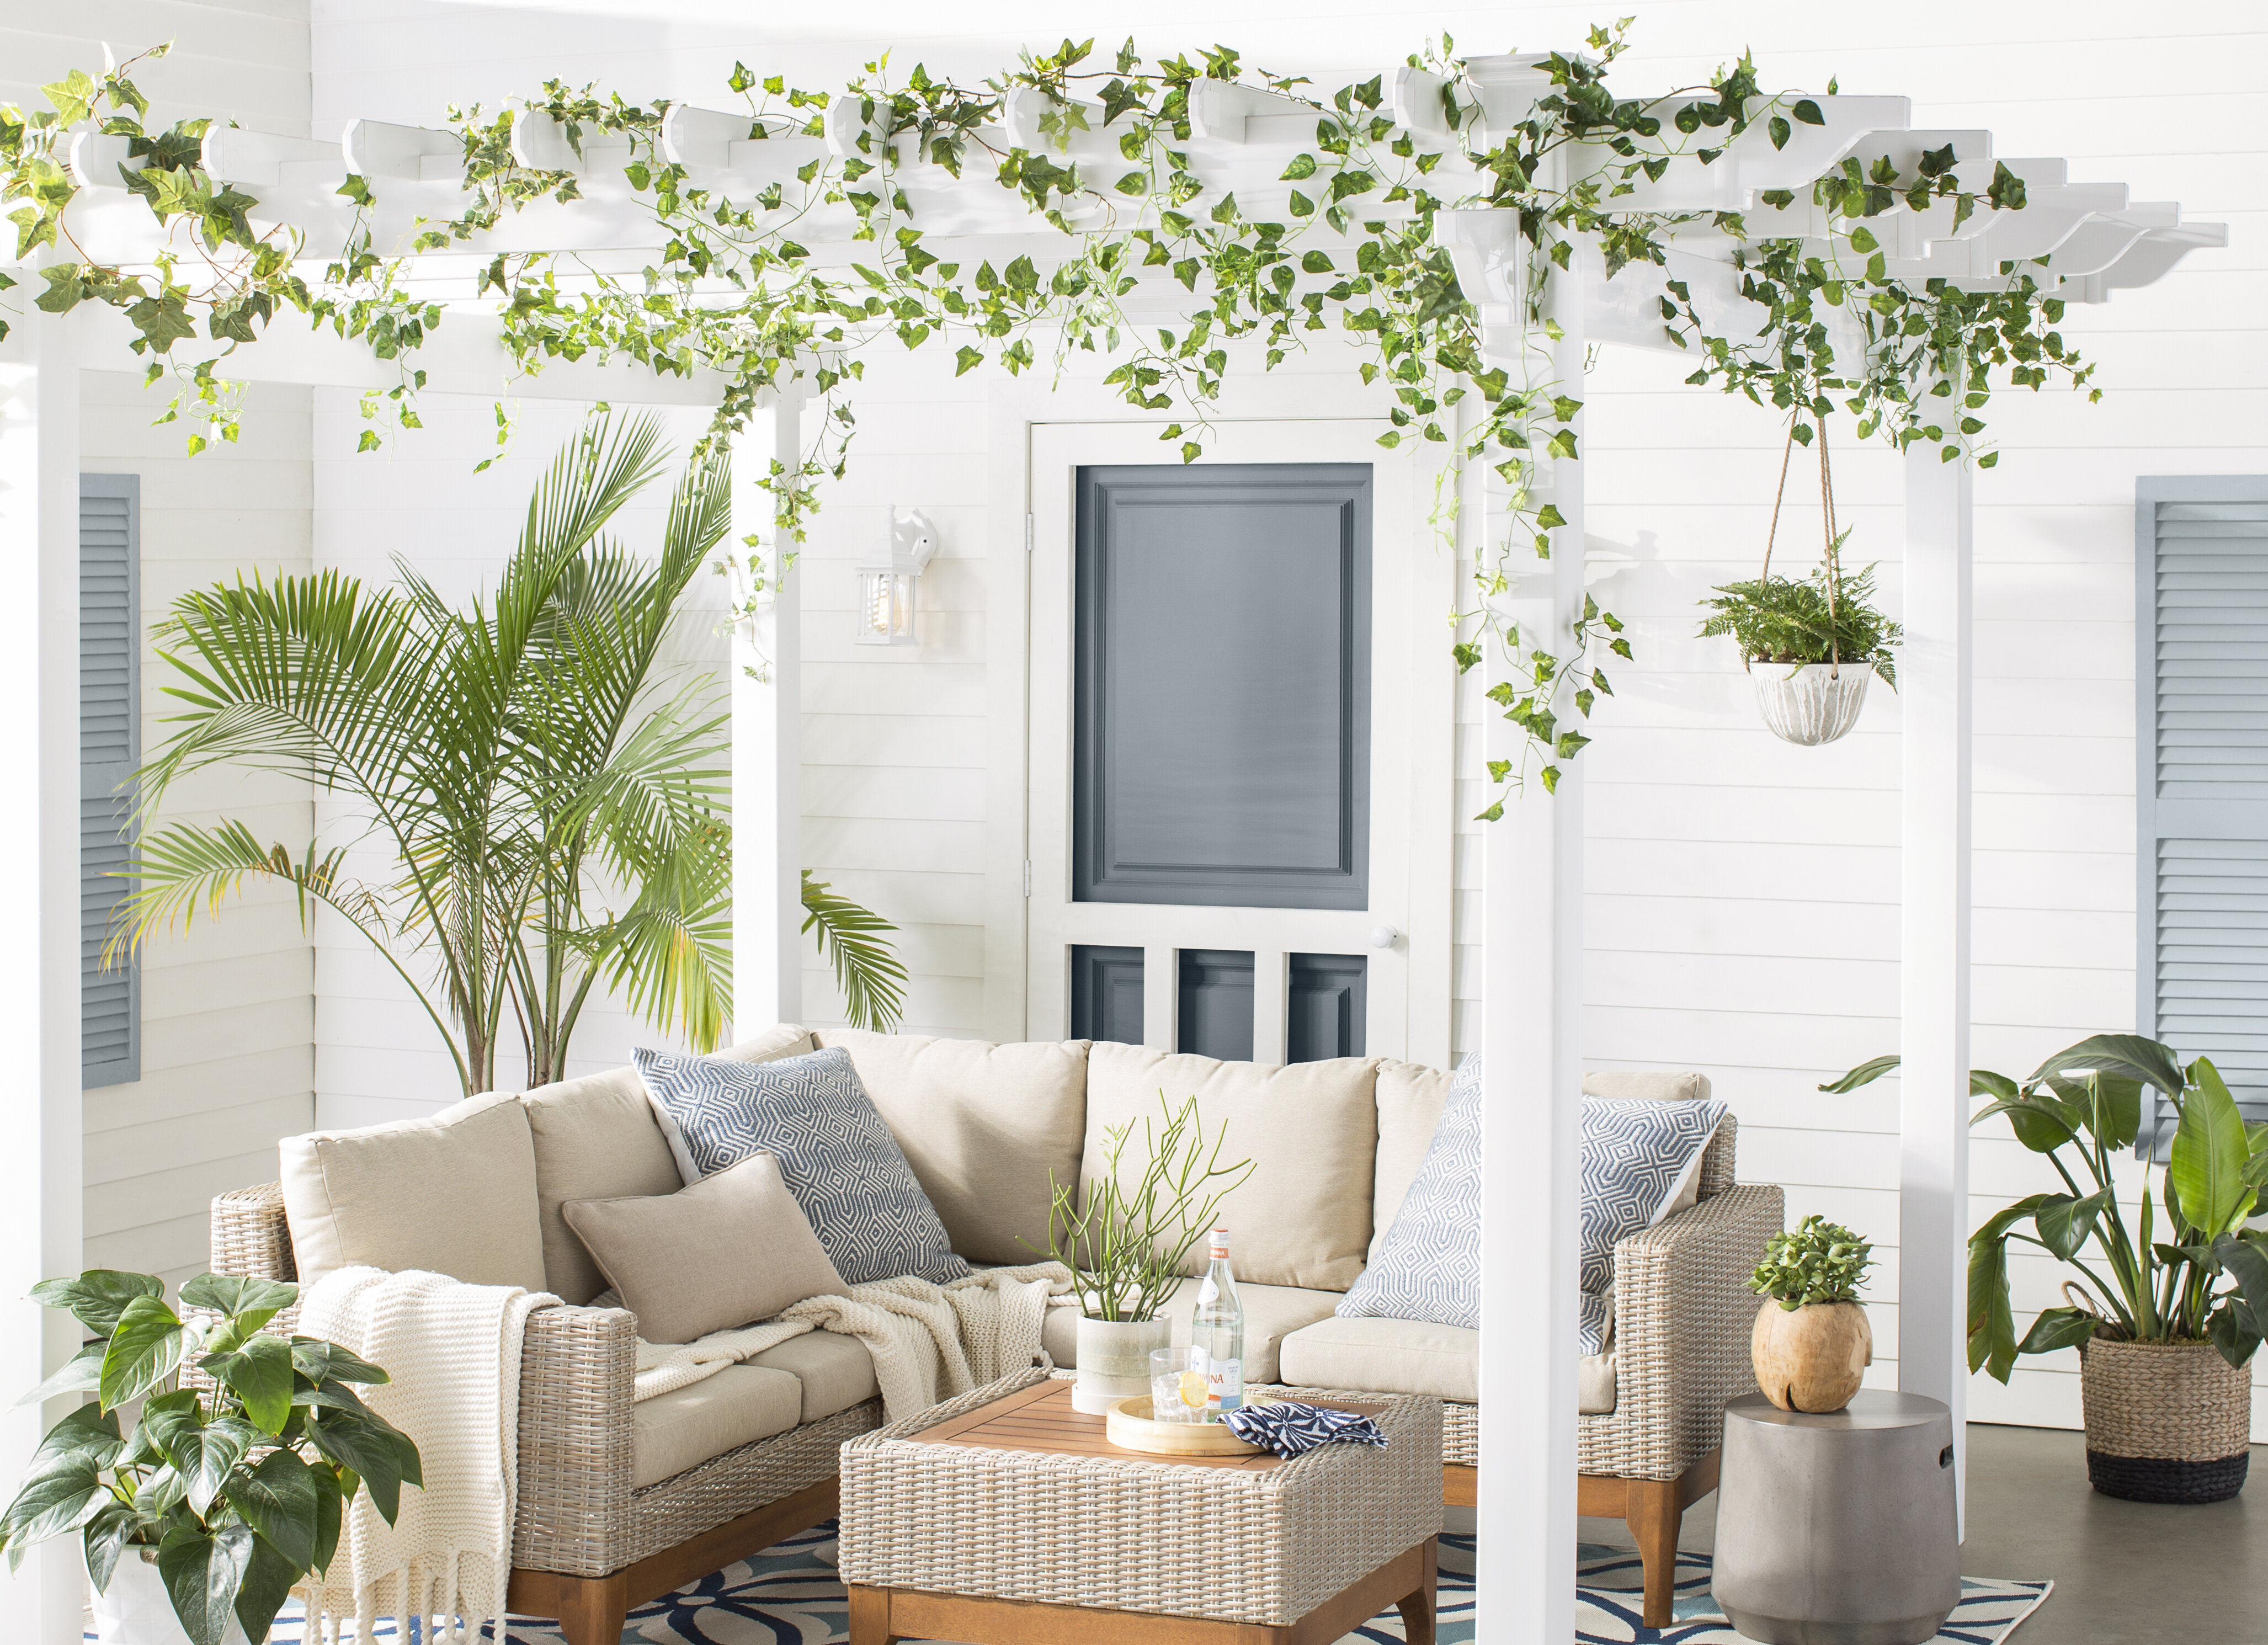 Clean white patio shaded by a pergola decorated with vines